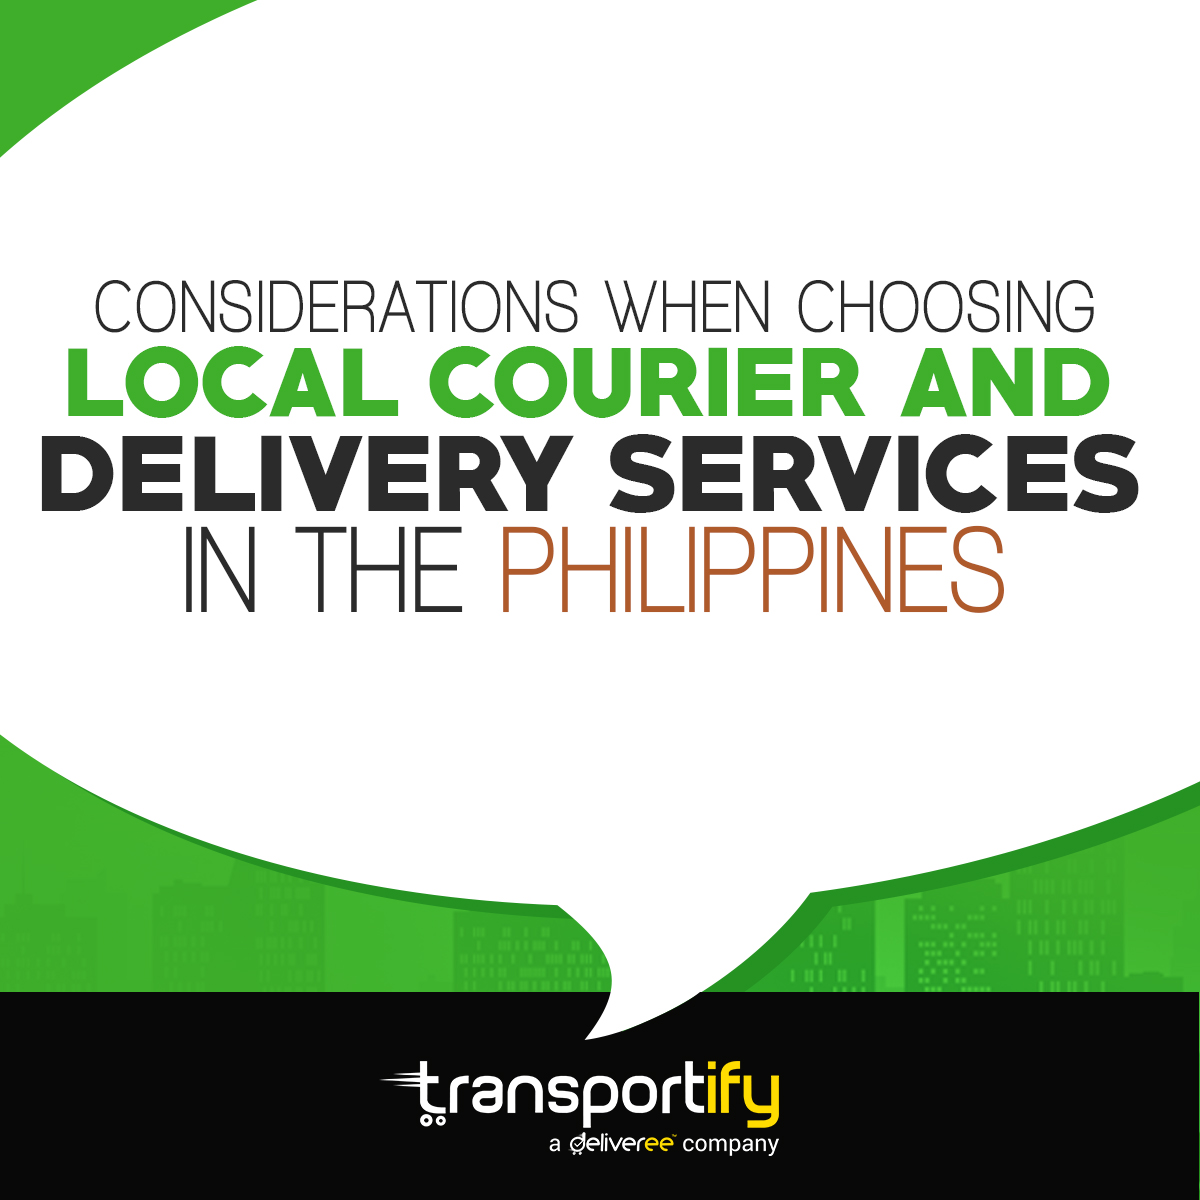 Local Courier - Service Delivery - Transportify - Same Day Delivery - Security - Affordability - Speed - Lalamove - Mober